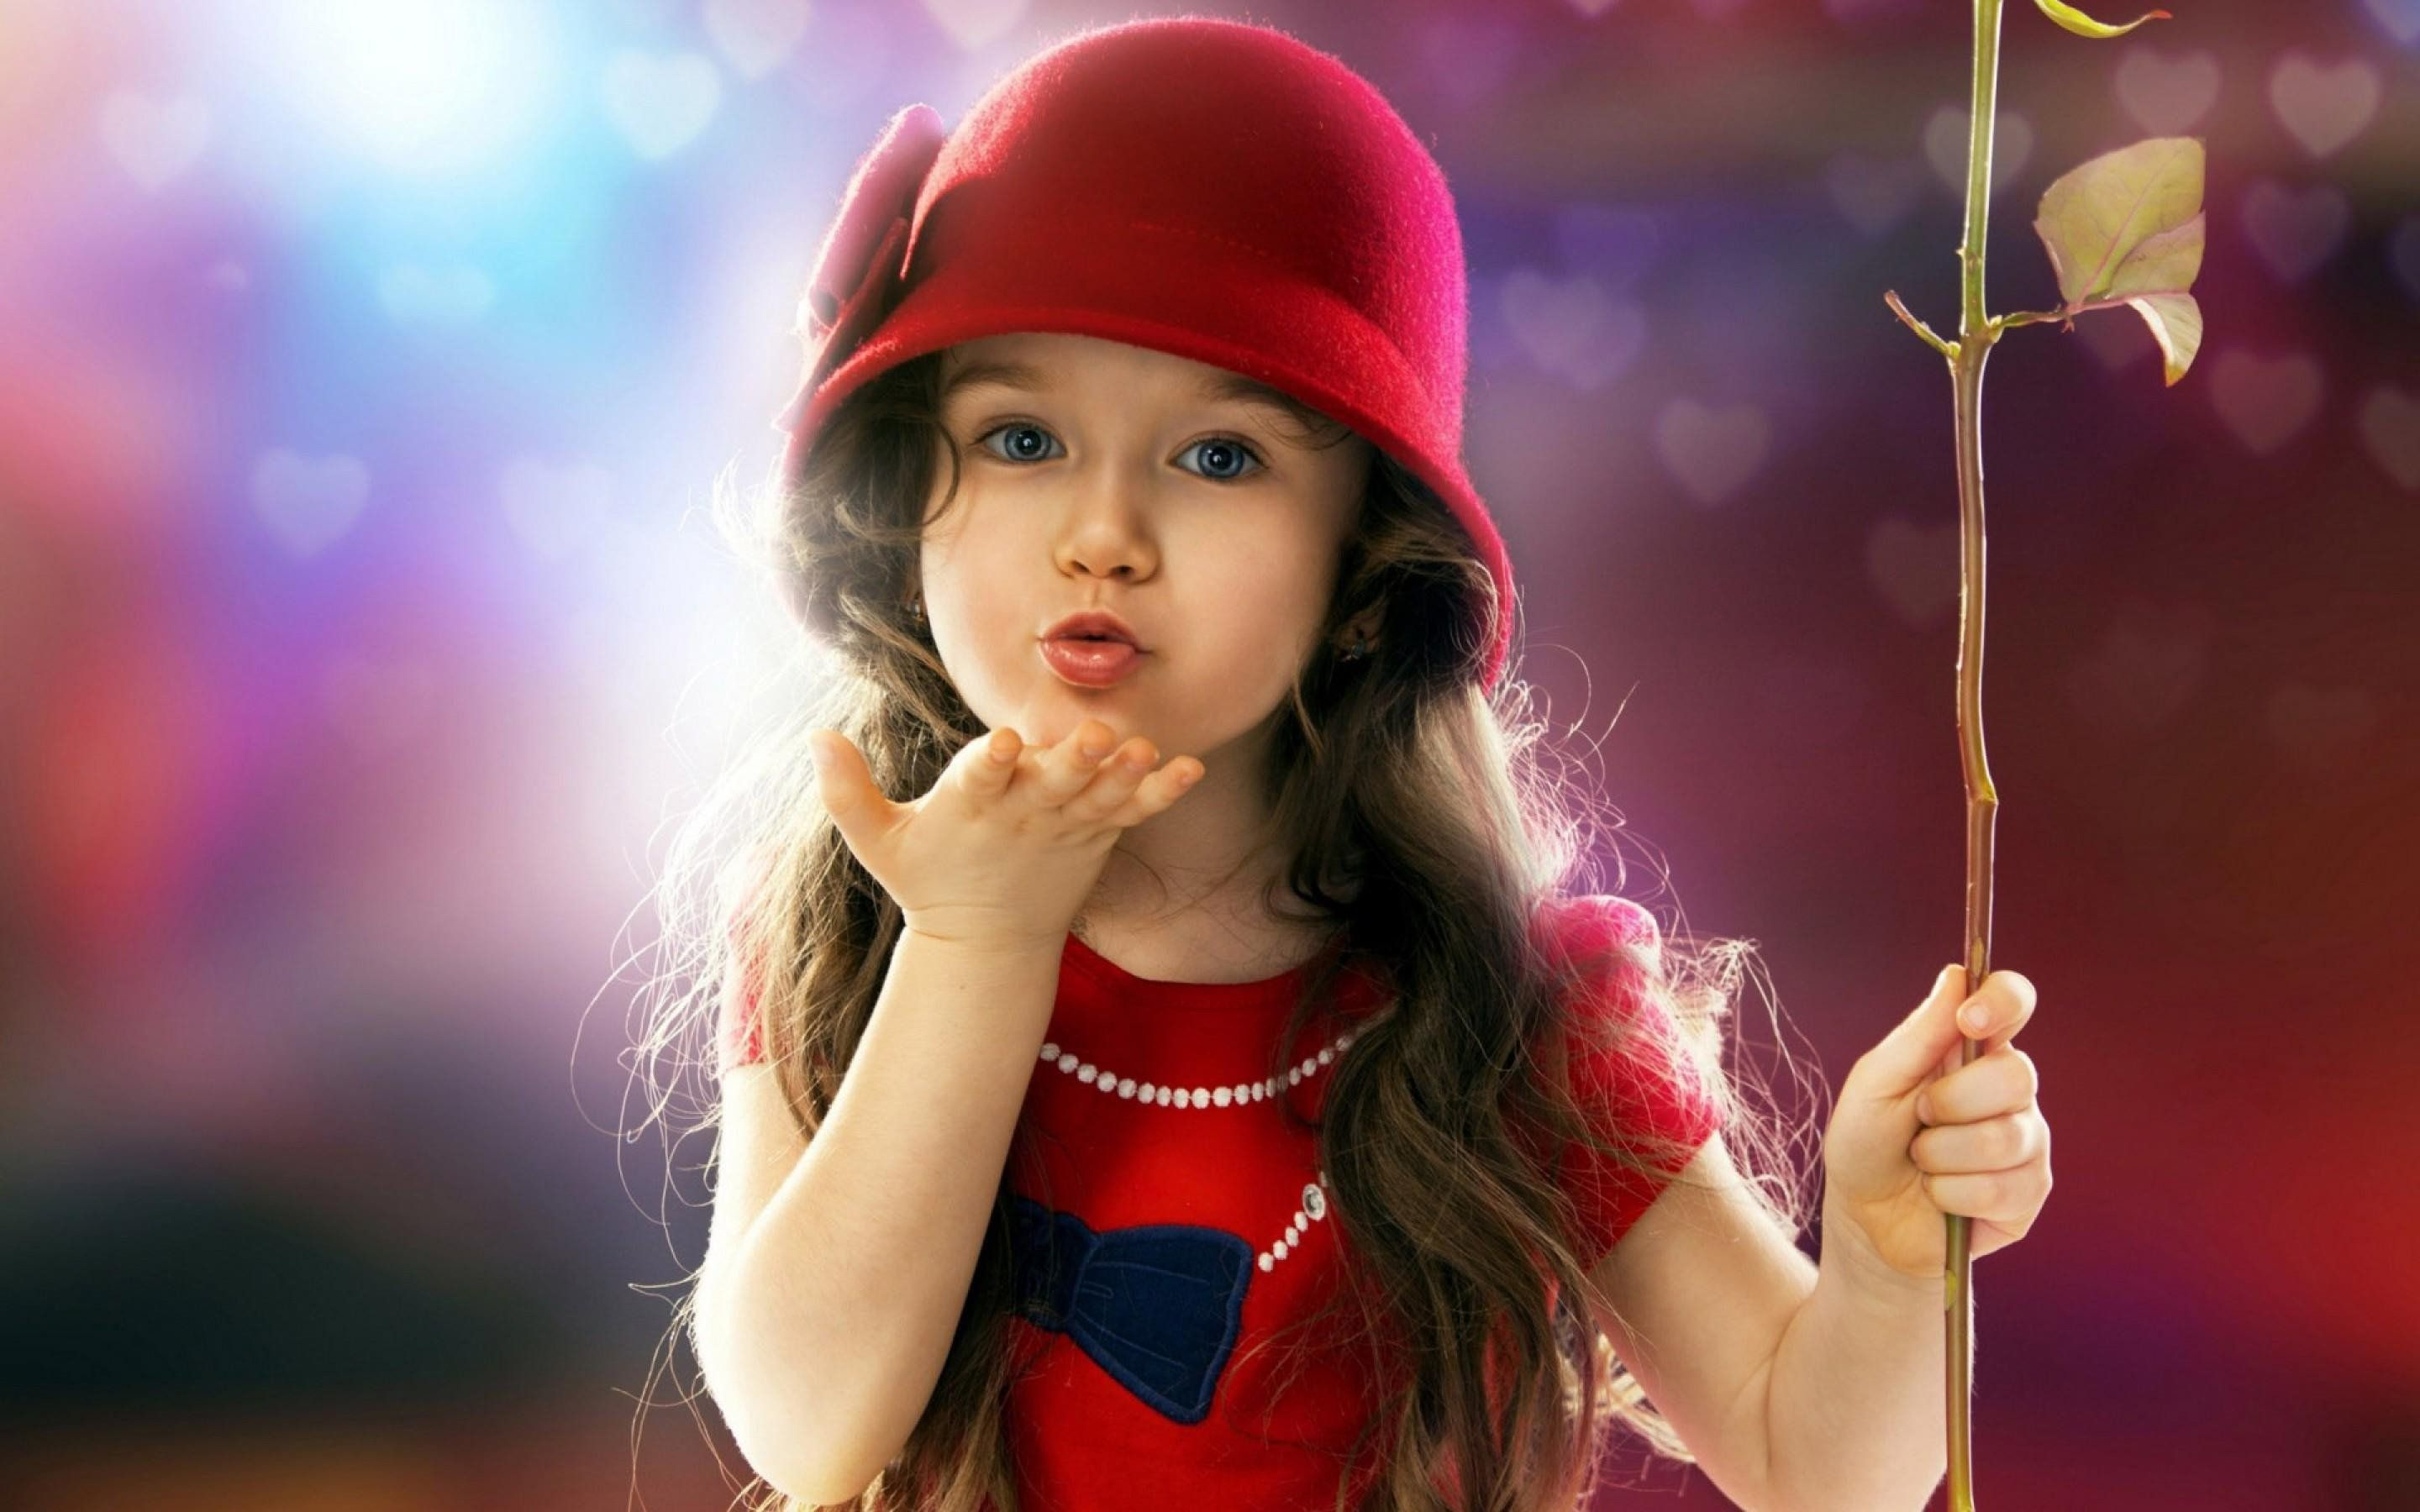 Girl baby pictures for wallpapers group art wallpapers pinterest